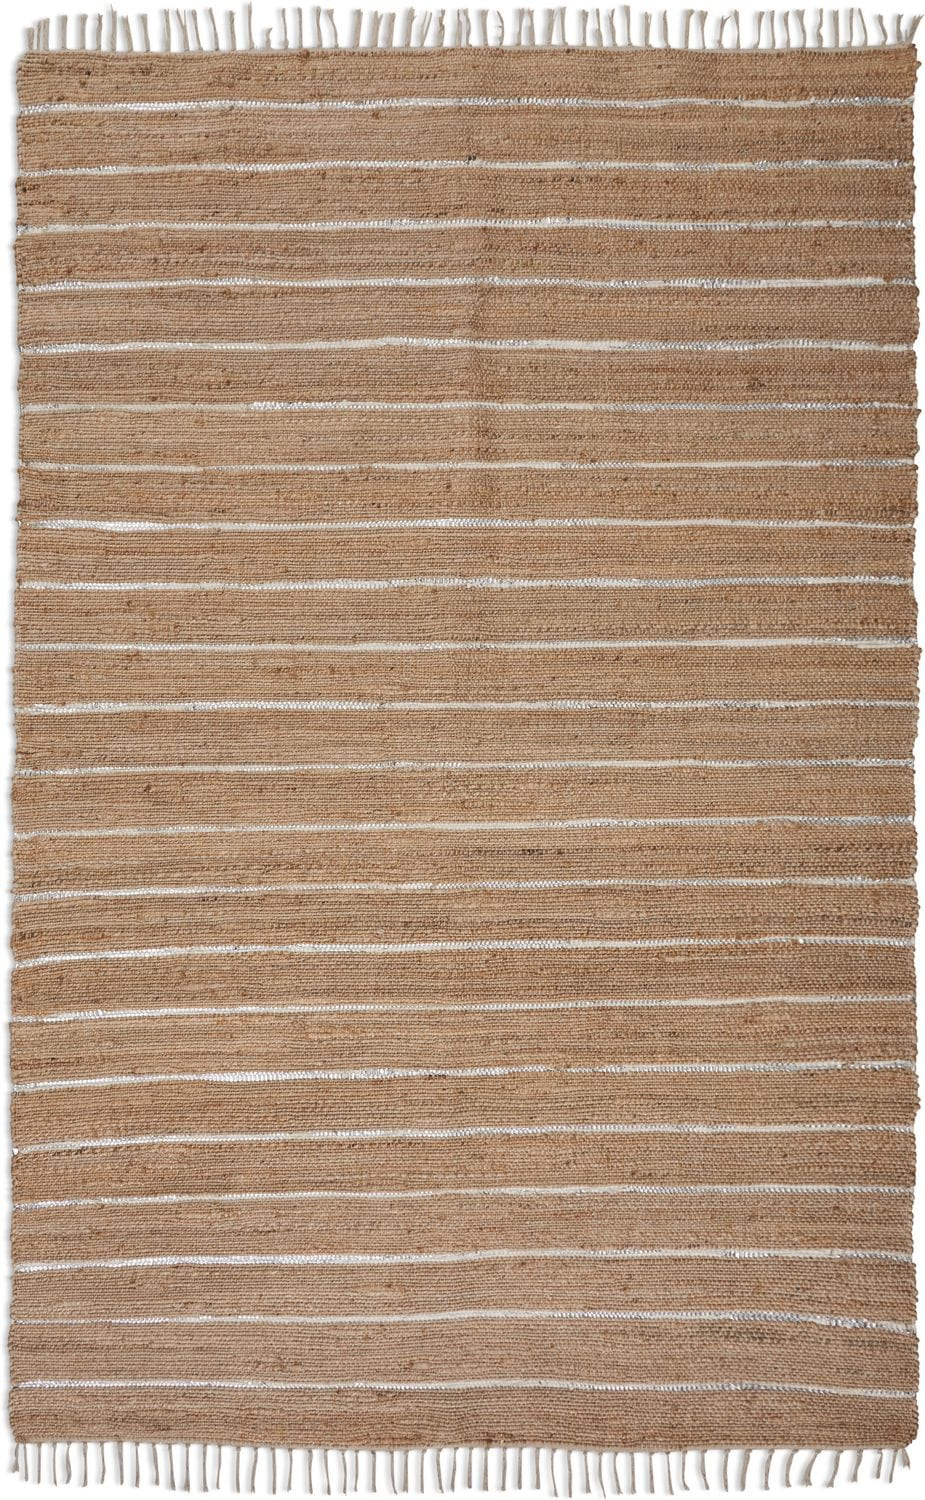 Rugs - Dylan Area Rug - Silver and Natural